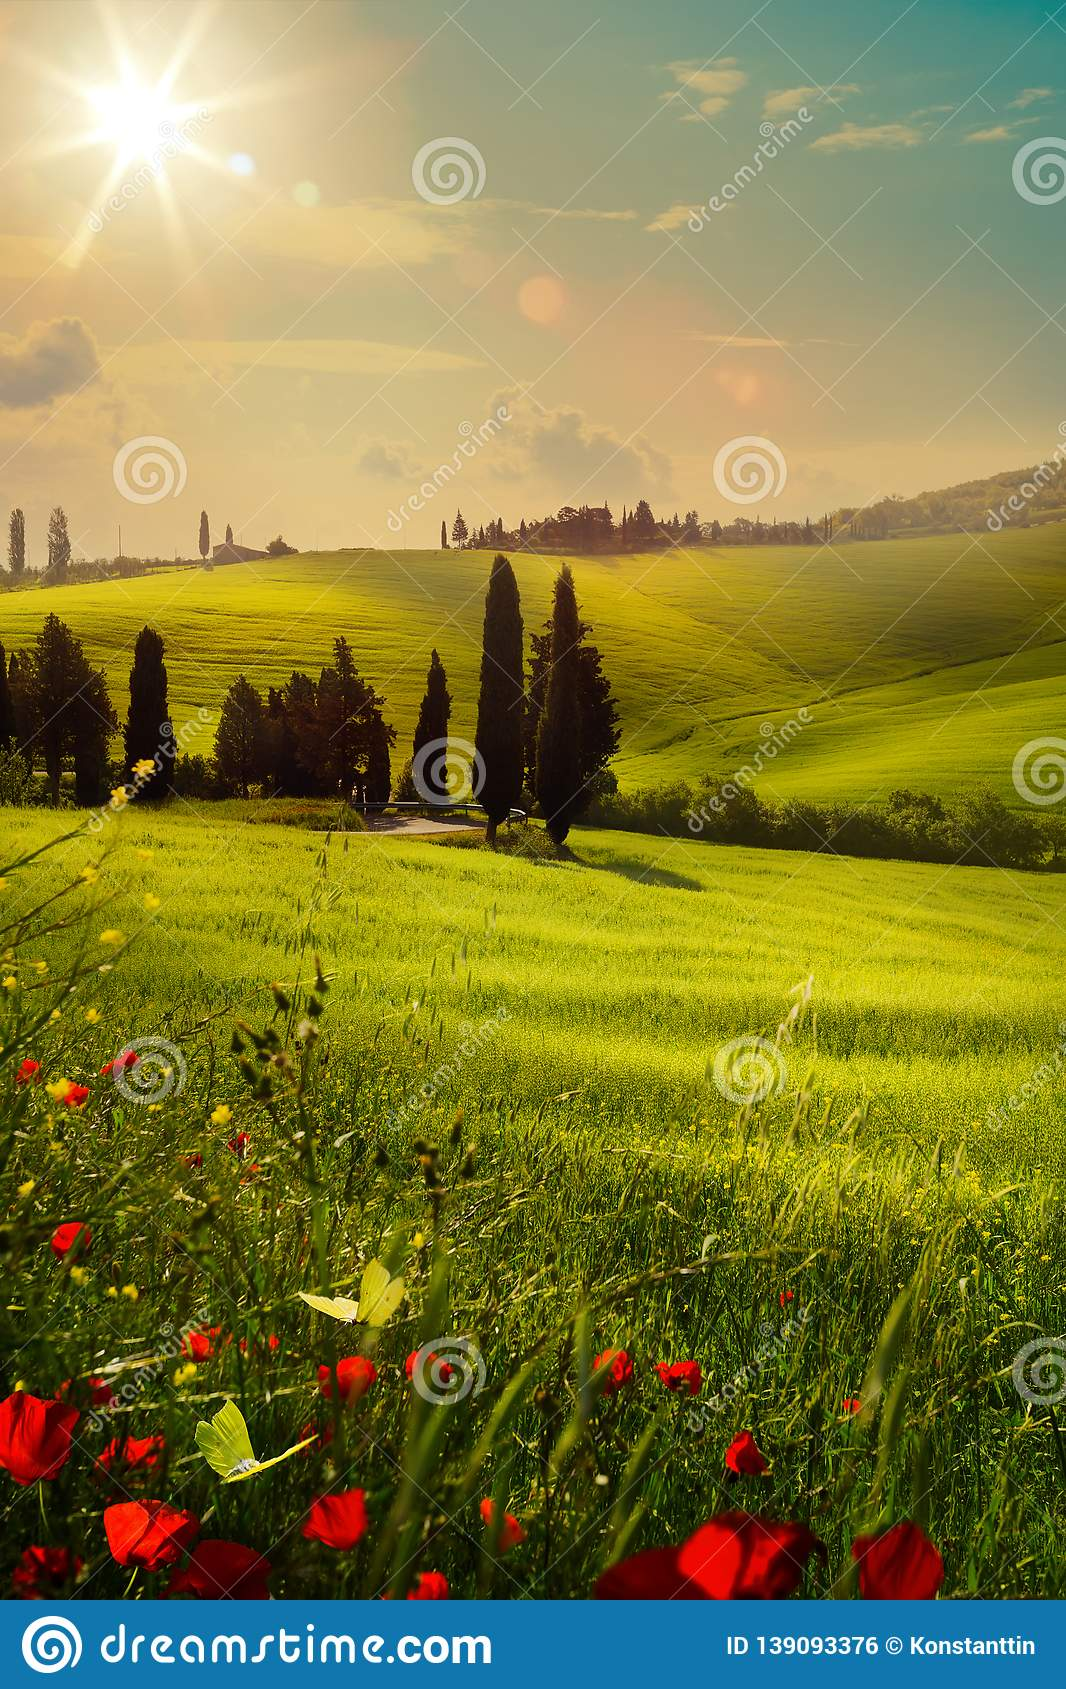 art spring farmland and country road; tuscany countryside rolling hills